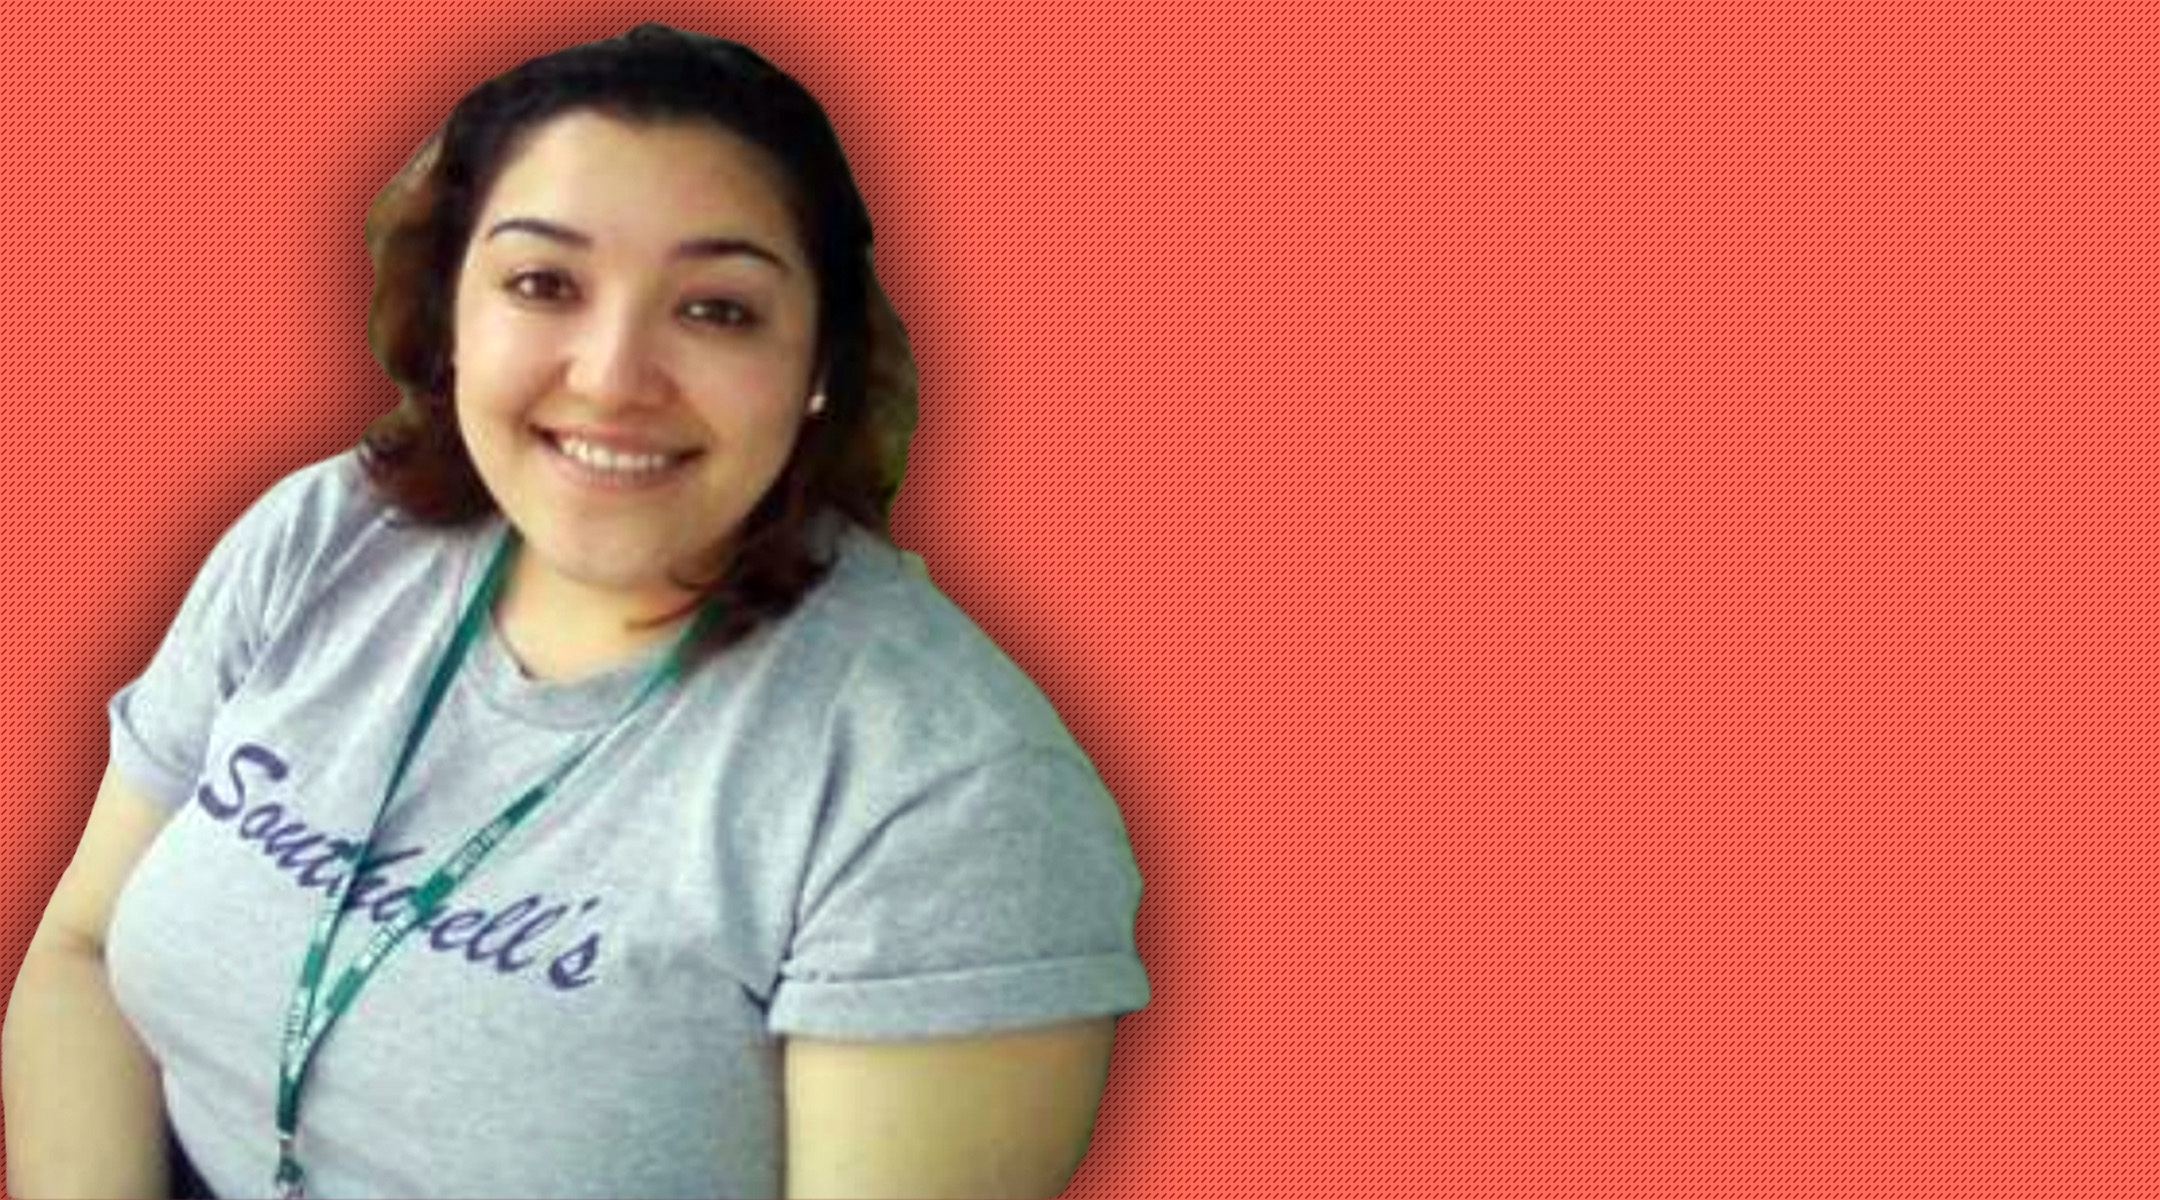 Nylssa Portillo Moreno, a Jewish immigrant detained by ICE, was released following an activist campaign that included national Jewish organizations. (Photo illustration)